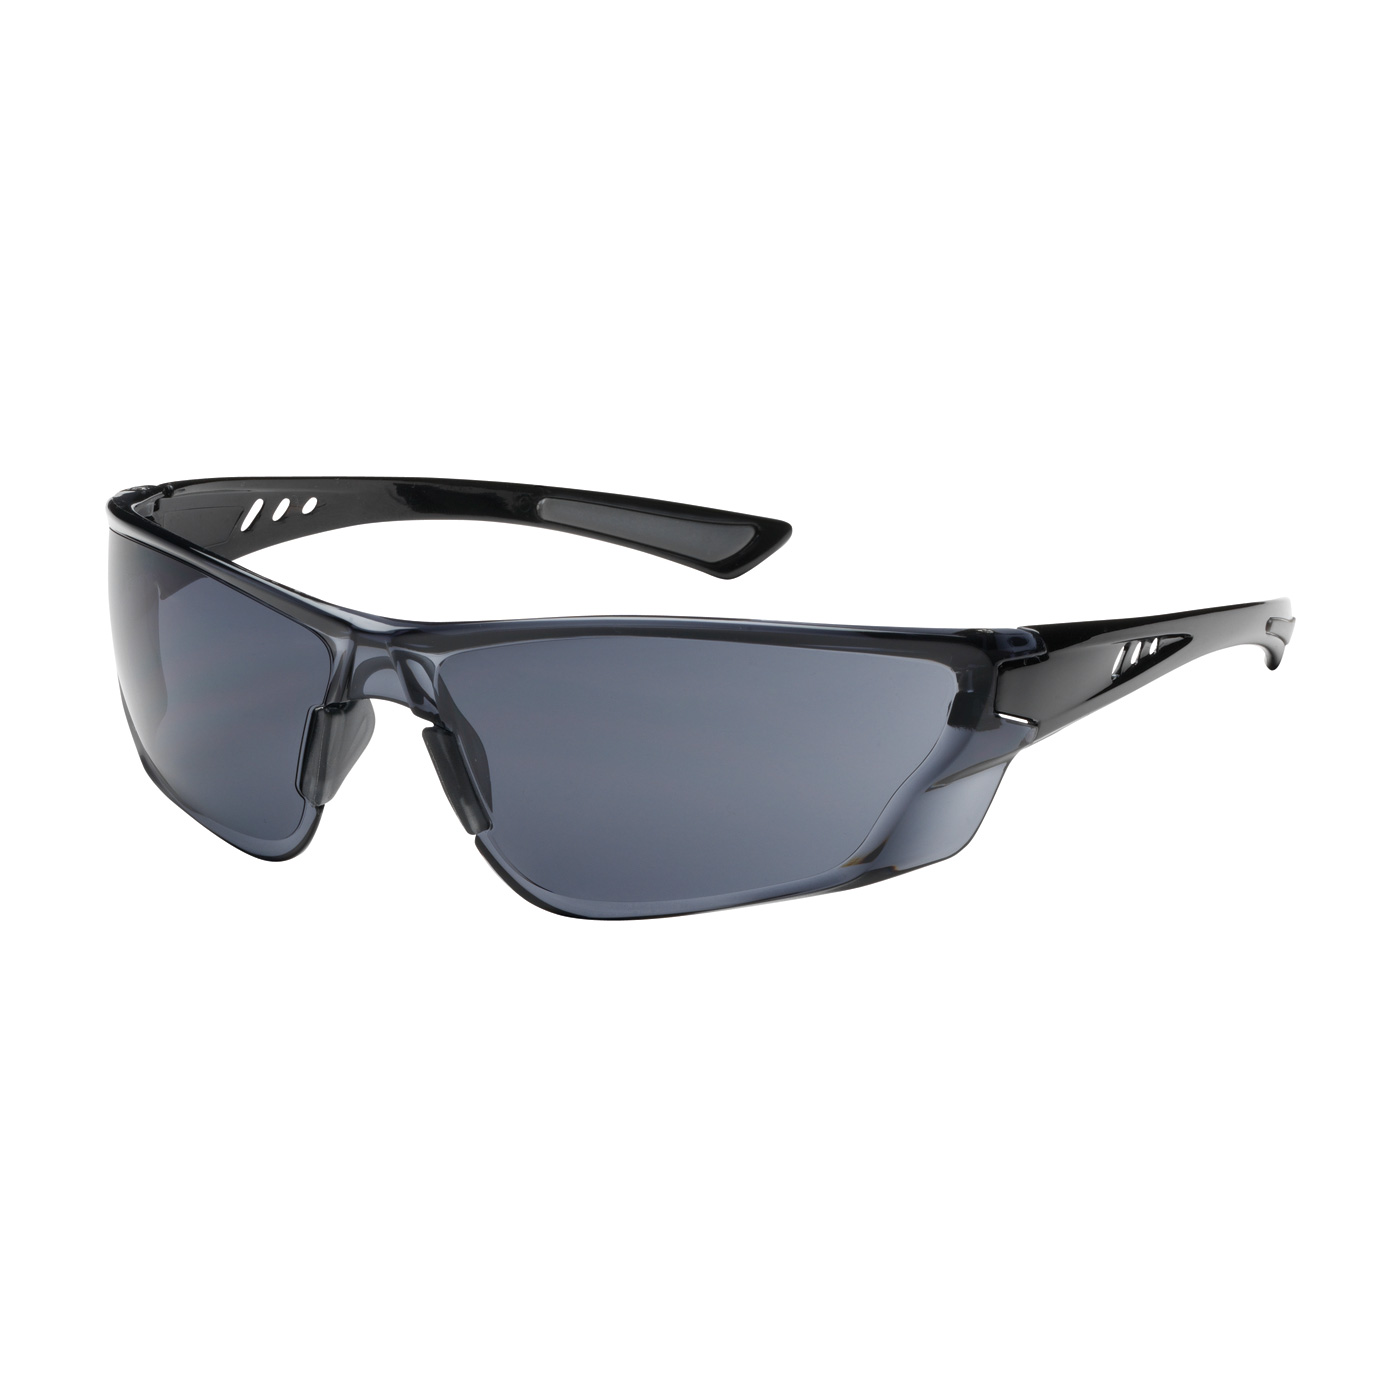 PIPR 250-32-0521 Rimless Safety Glasses with Gloss Black Temple, Gray Lens and Anti-Scratch / FogLess 3Sixty Coating